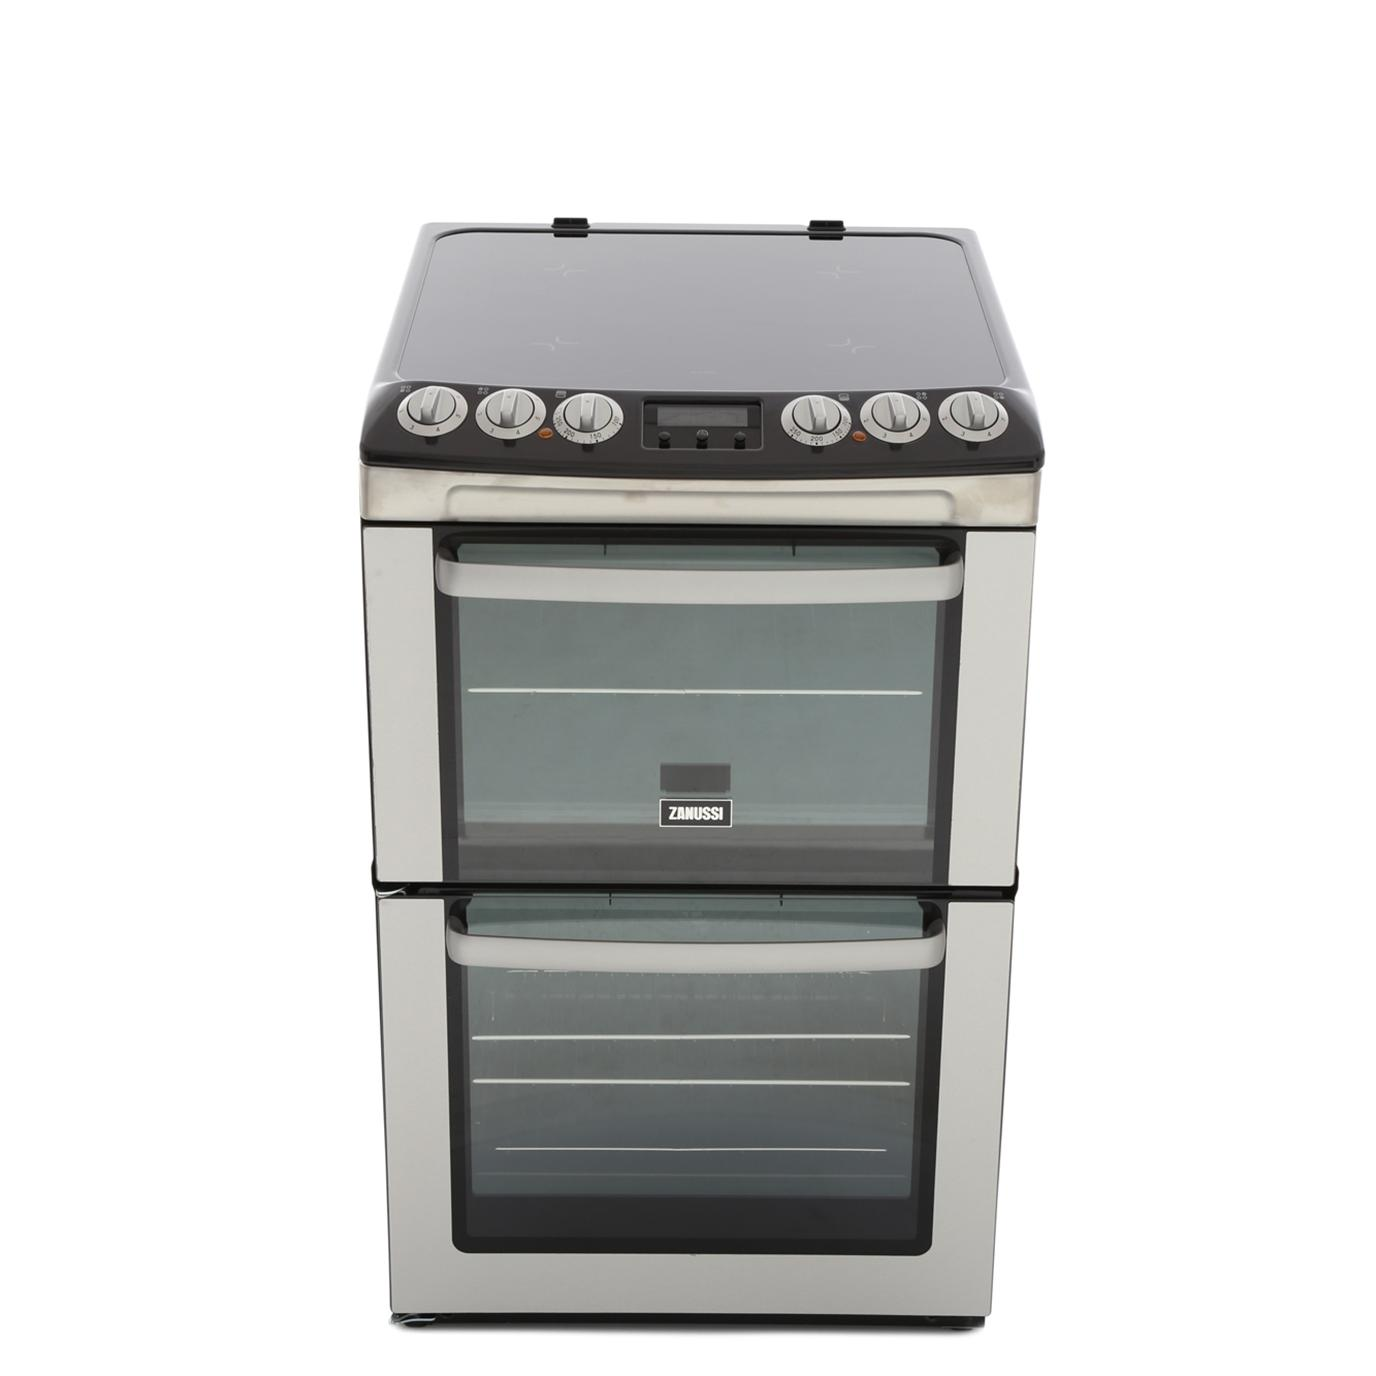 Zanussi ZCV551MXC Ceramic Electric Cooker with Double Oven